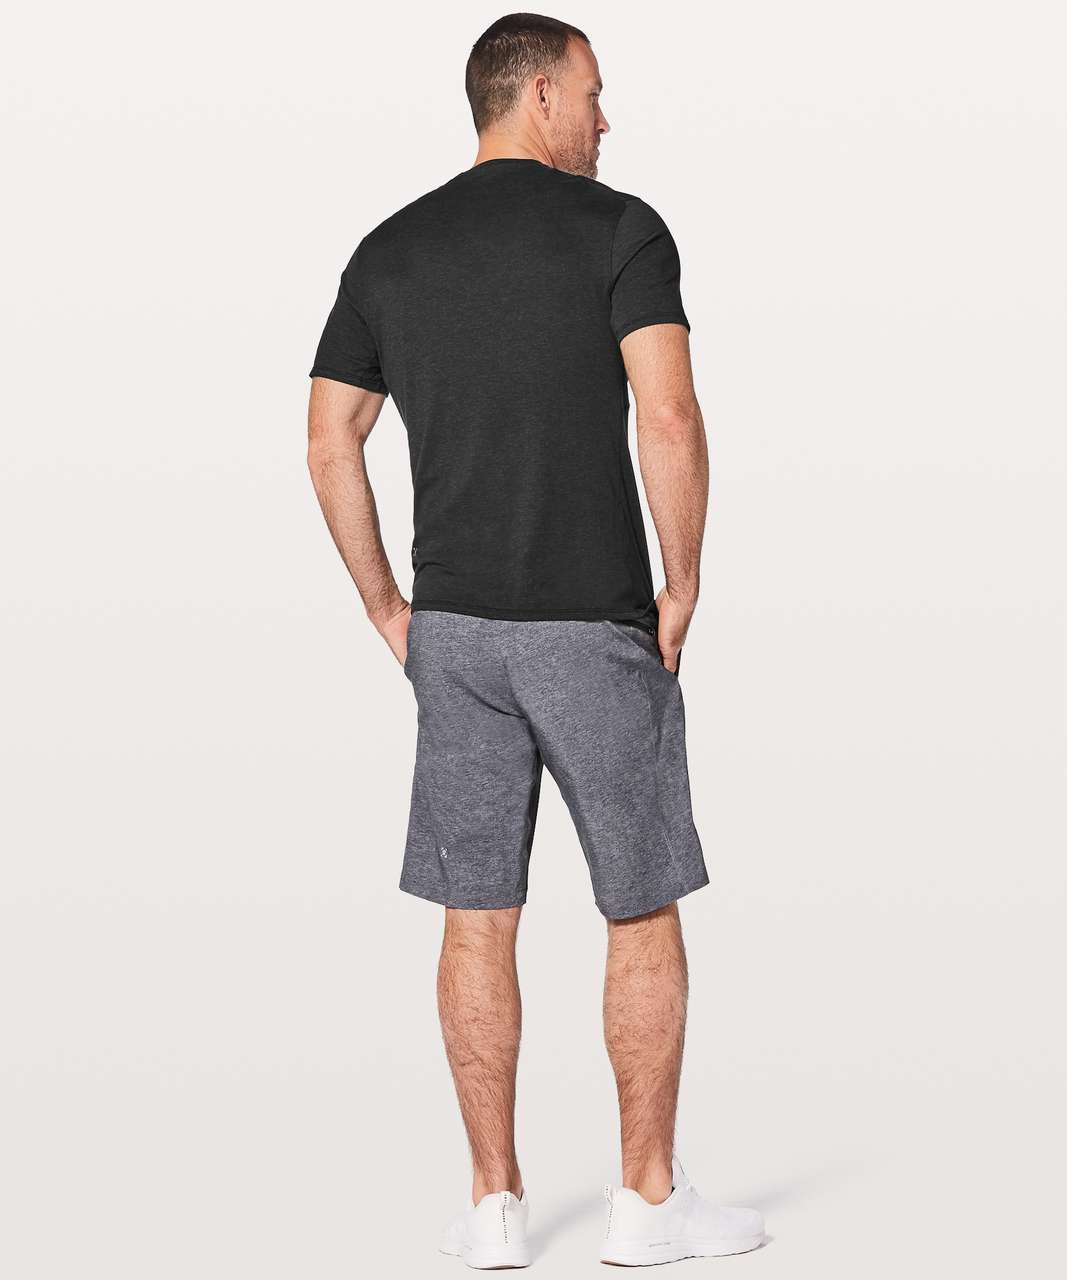 Lululemon Somatic Aero Short Sleeve - Black